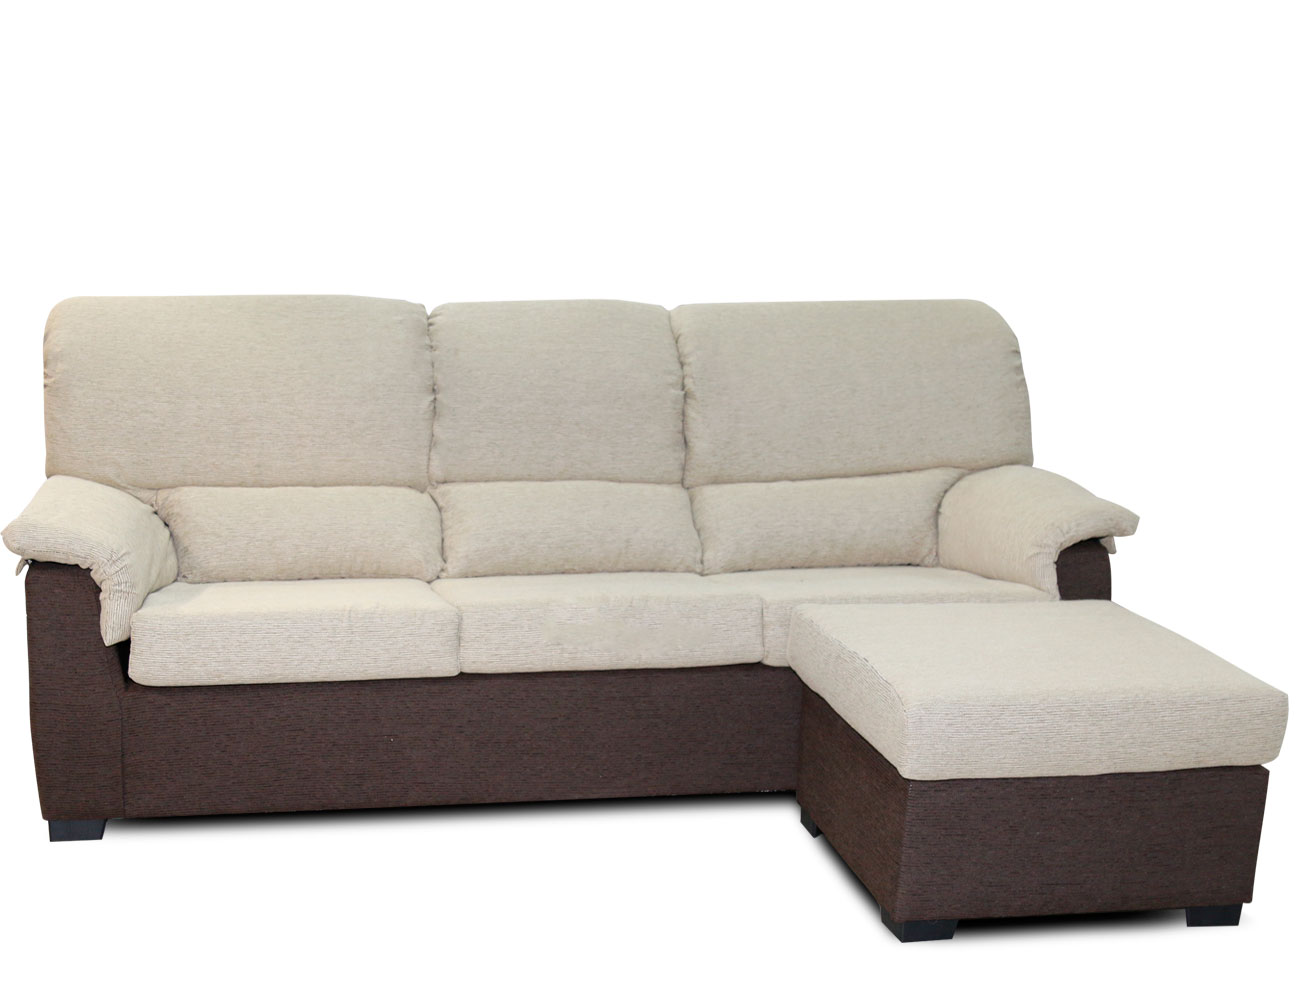 Sof chaiselongue barato con puf reversible 15285 for Sofas diseno baratos